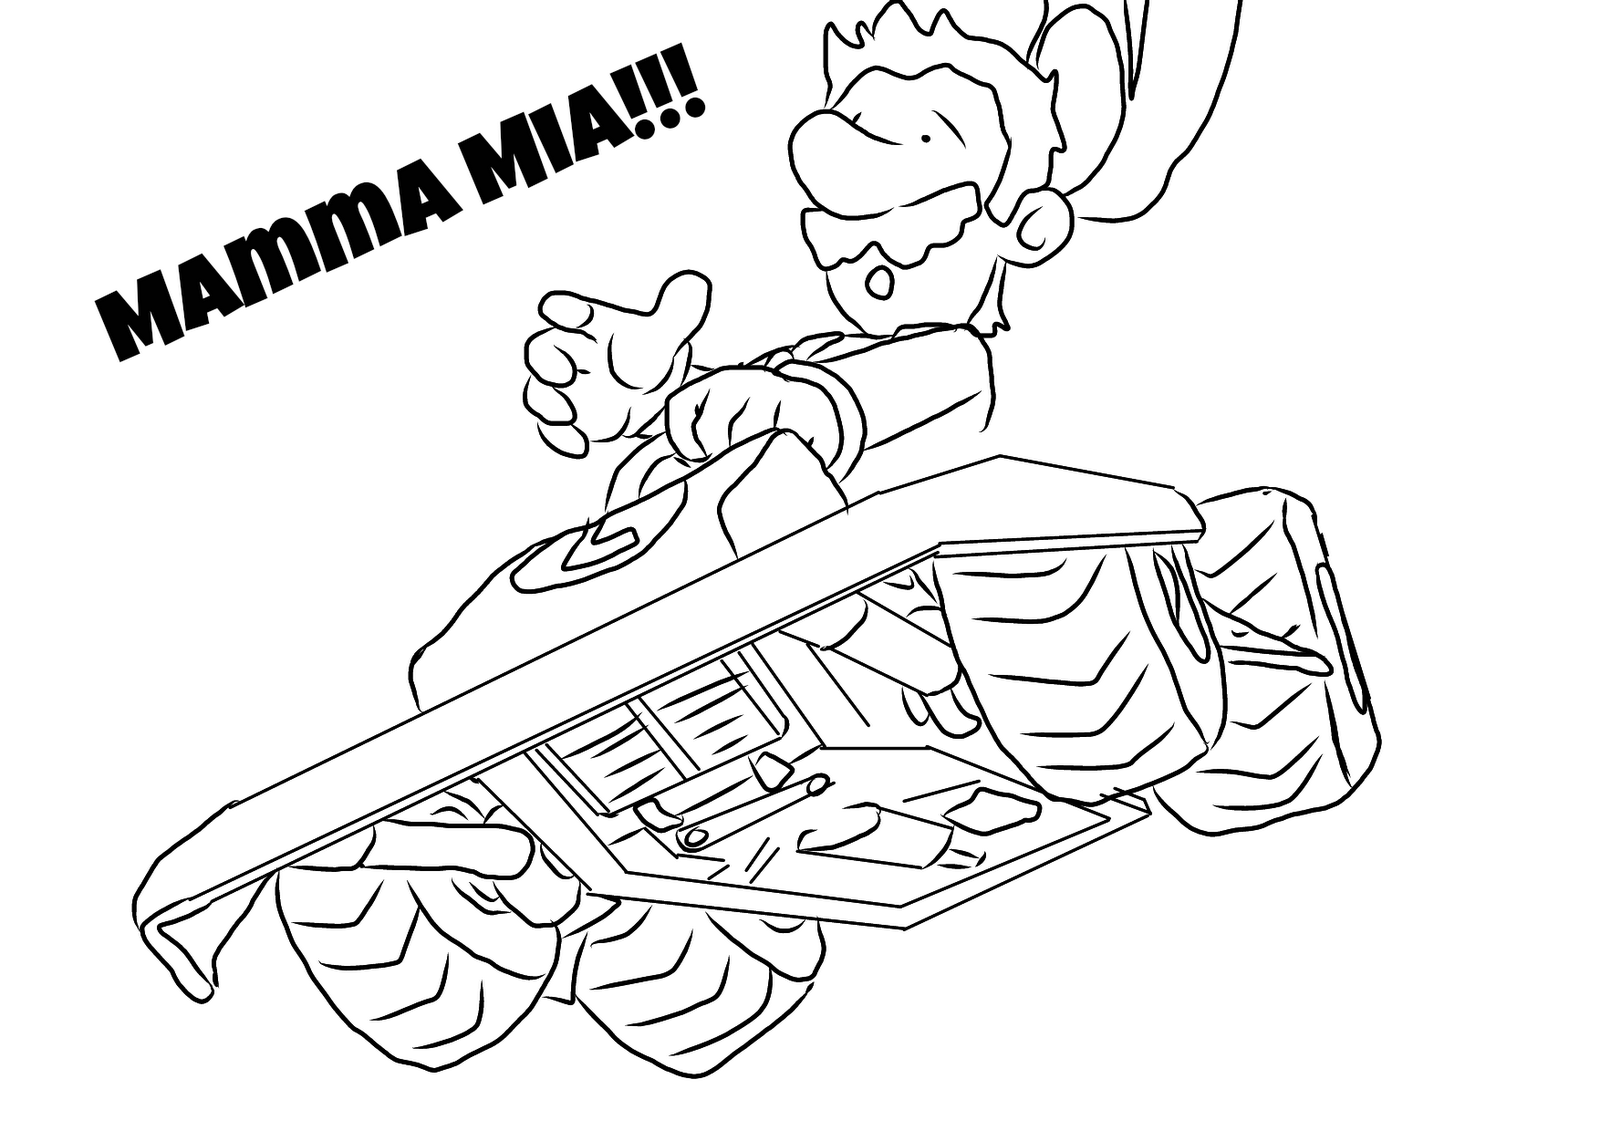 mario cart wii coloring pages - photo#12